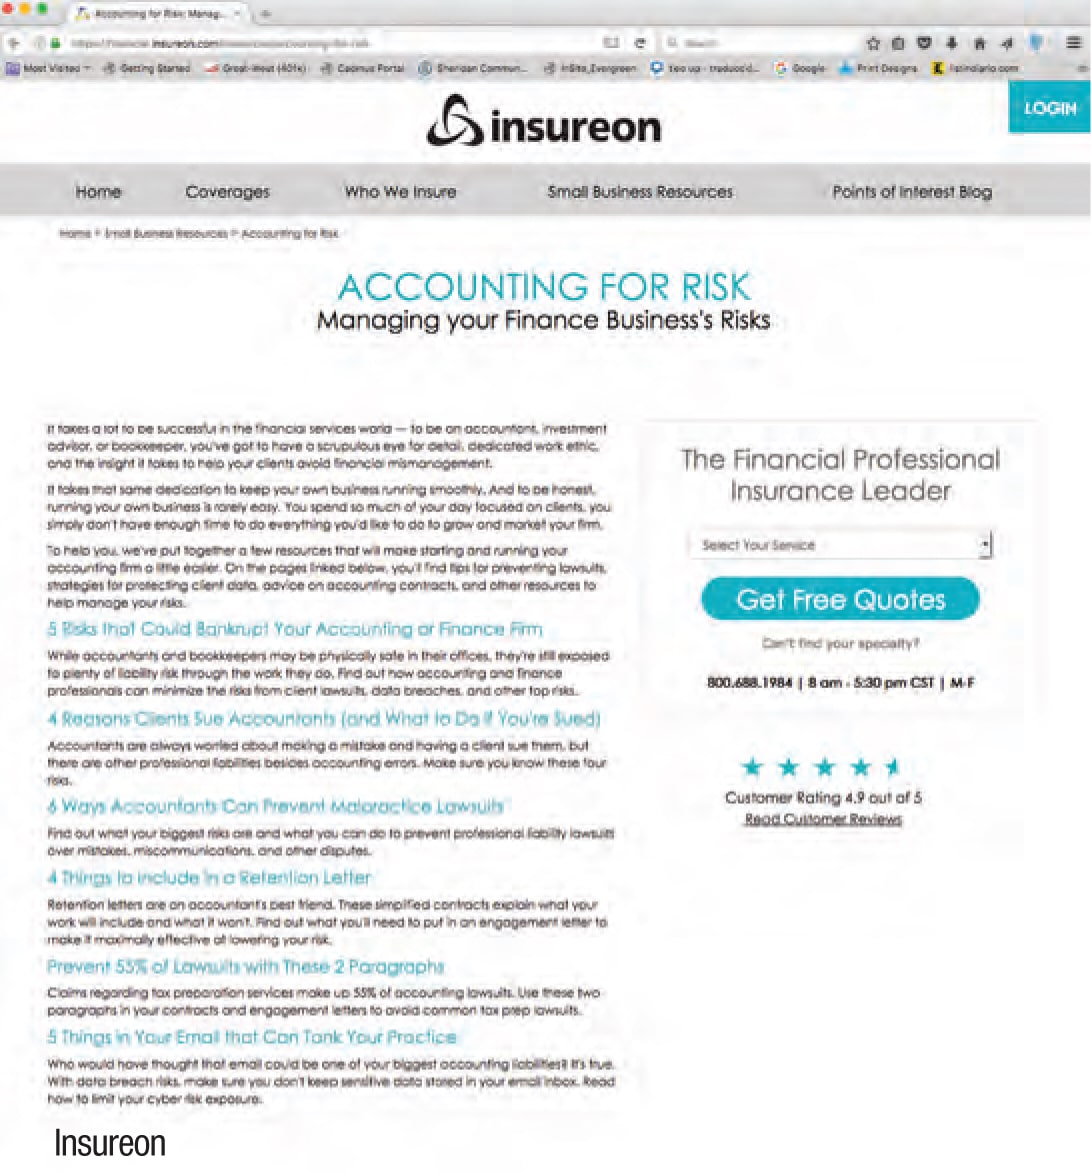 Insureon and Landy Insurance - The CPA Journal